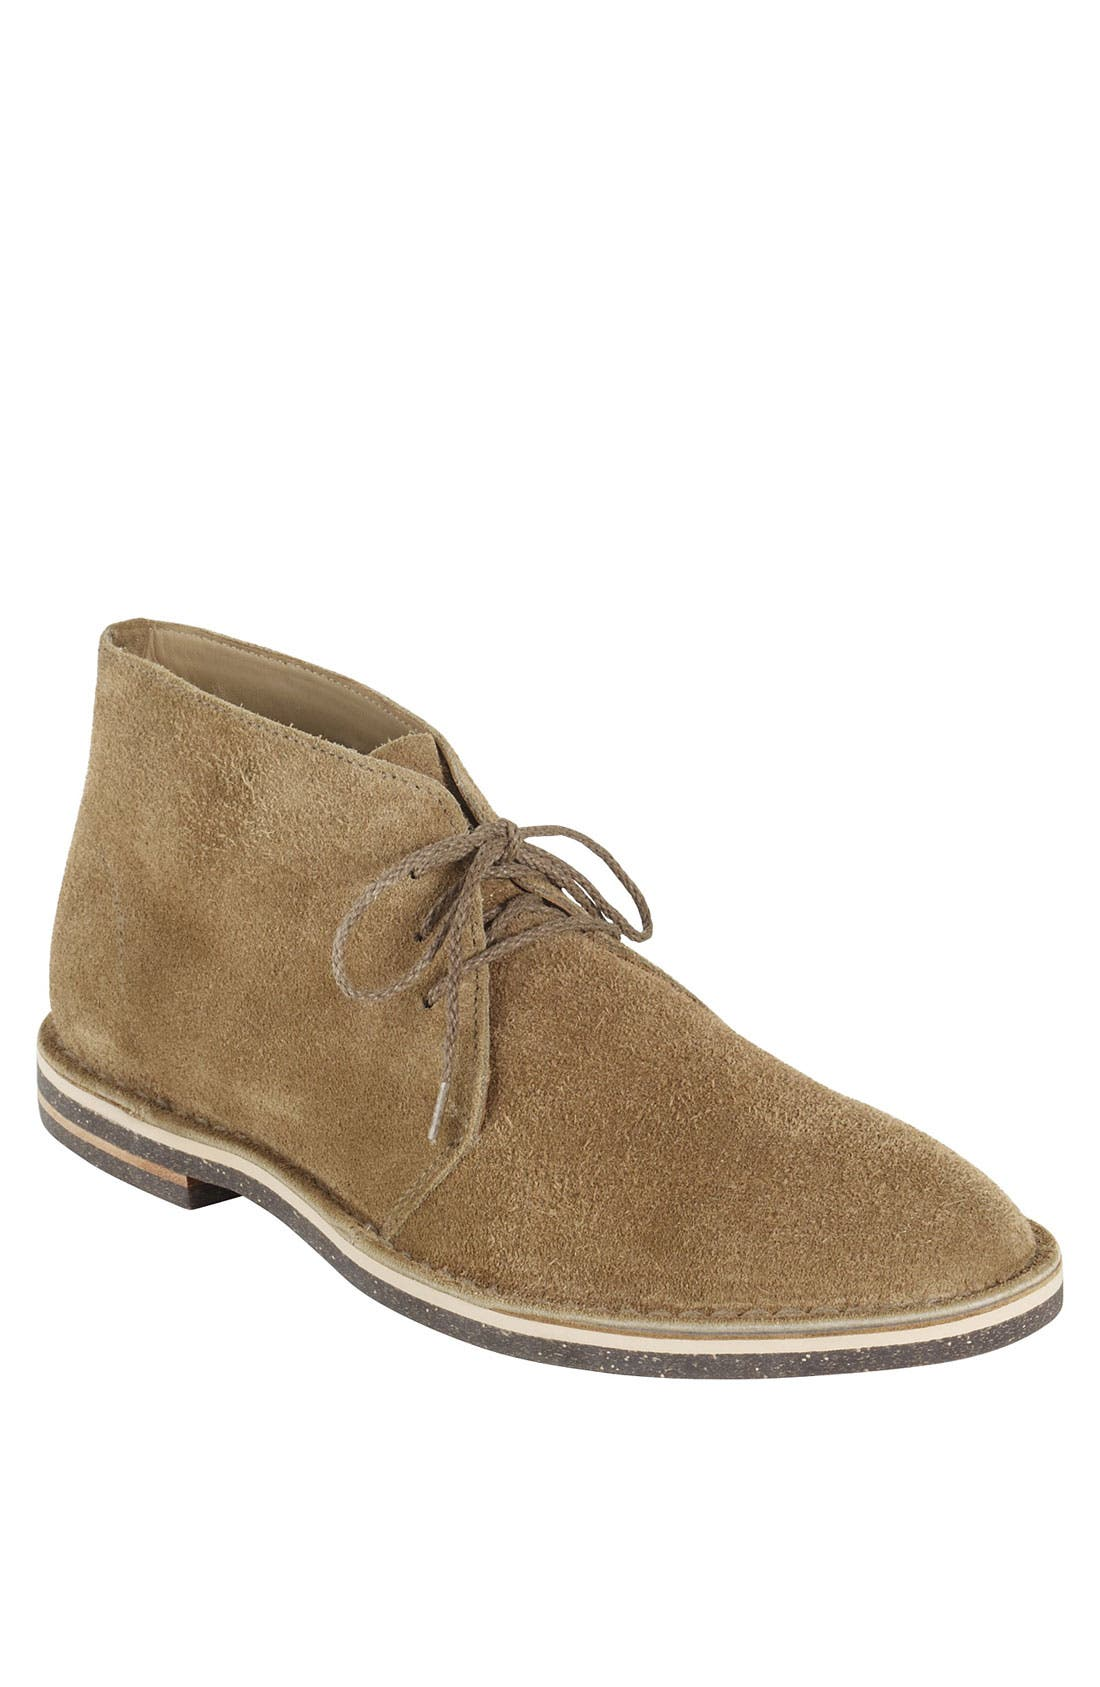 Main Image - Cole Haan 'Paul' Winter Chukka Boot